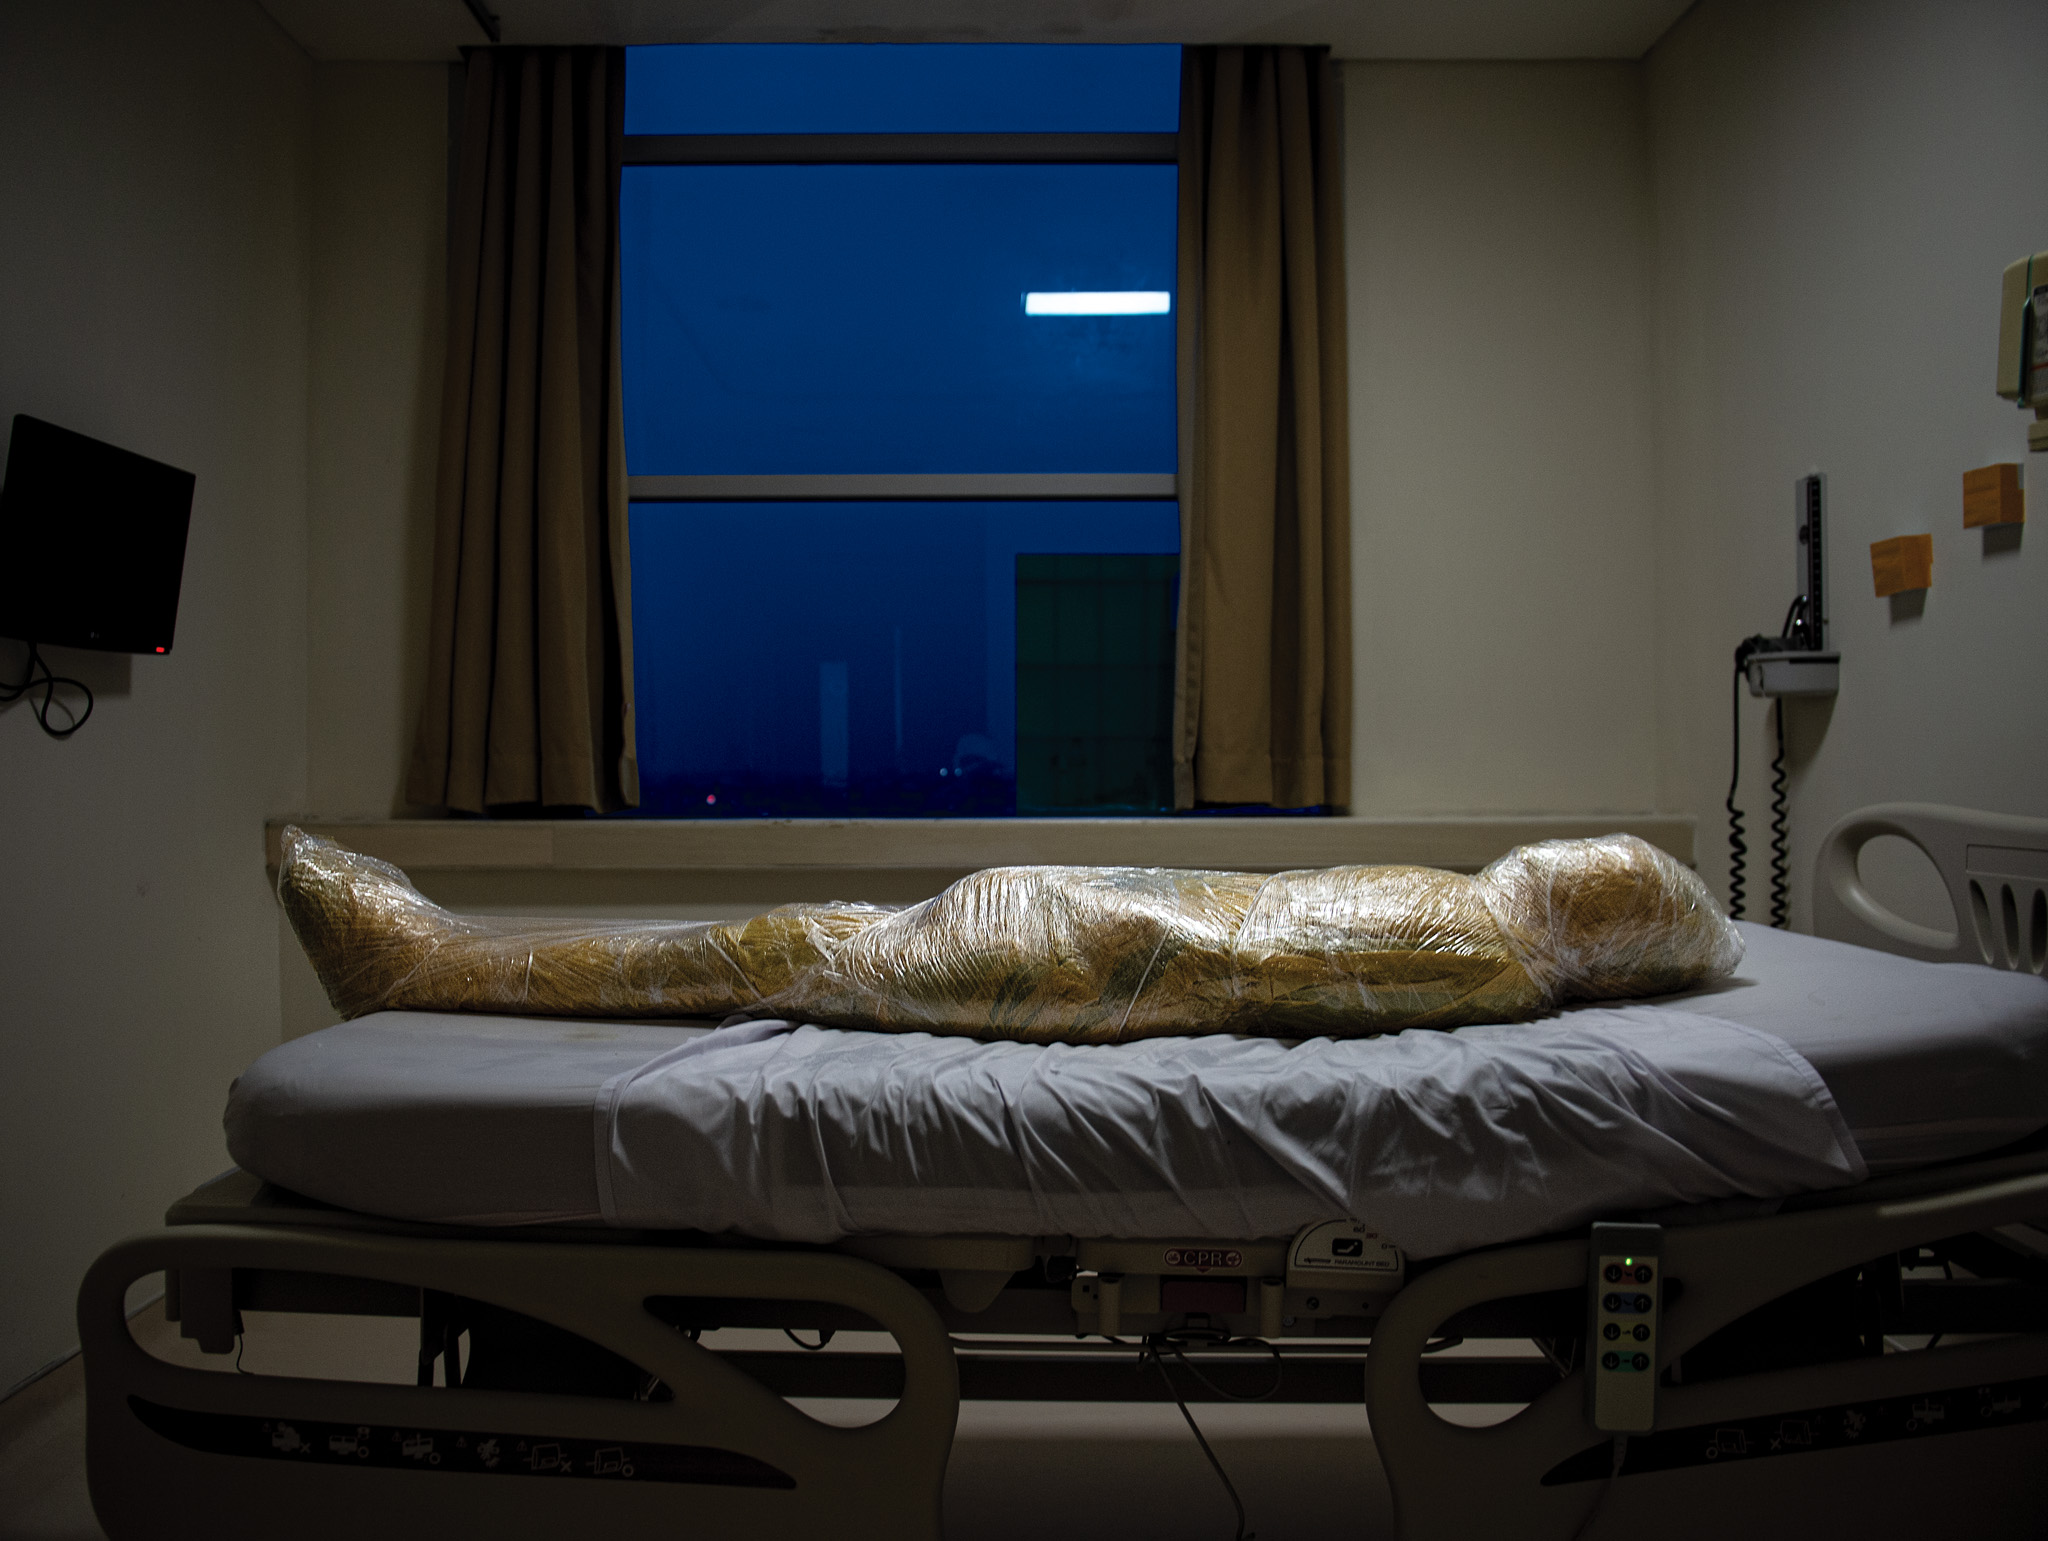 Picture of a human body wrapped in plastic on a hospital bed